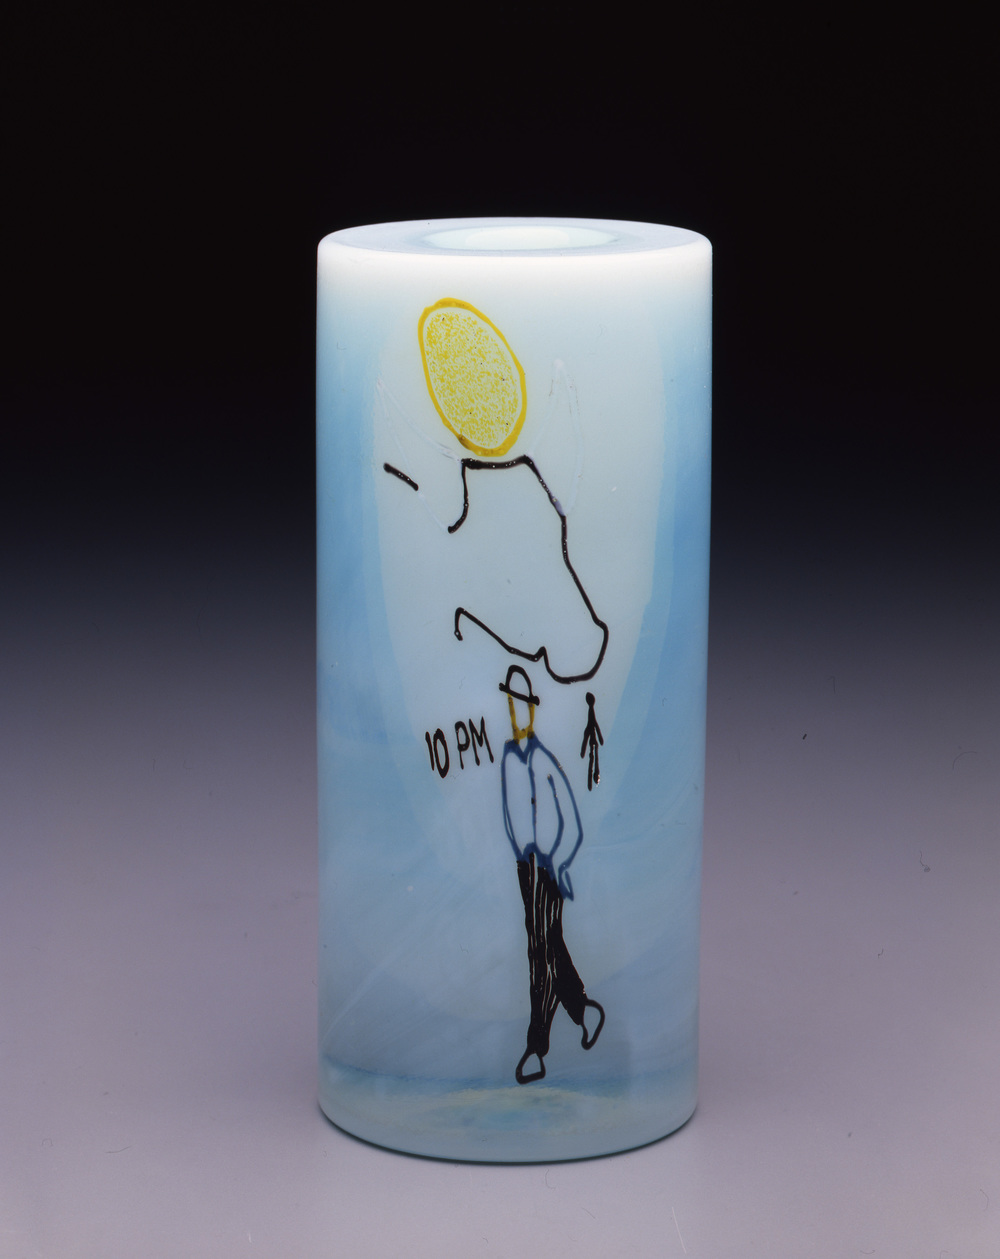 Dale Chihuly,  Irish Cylinder #17   (1975, glass, 7 x 3 inches), DC.279